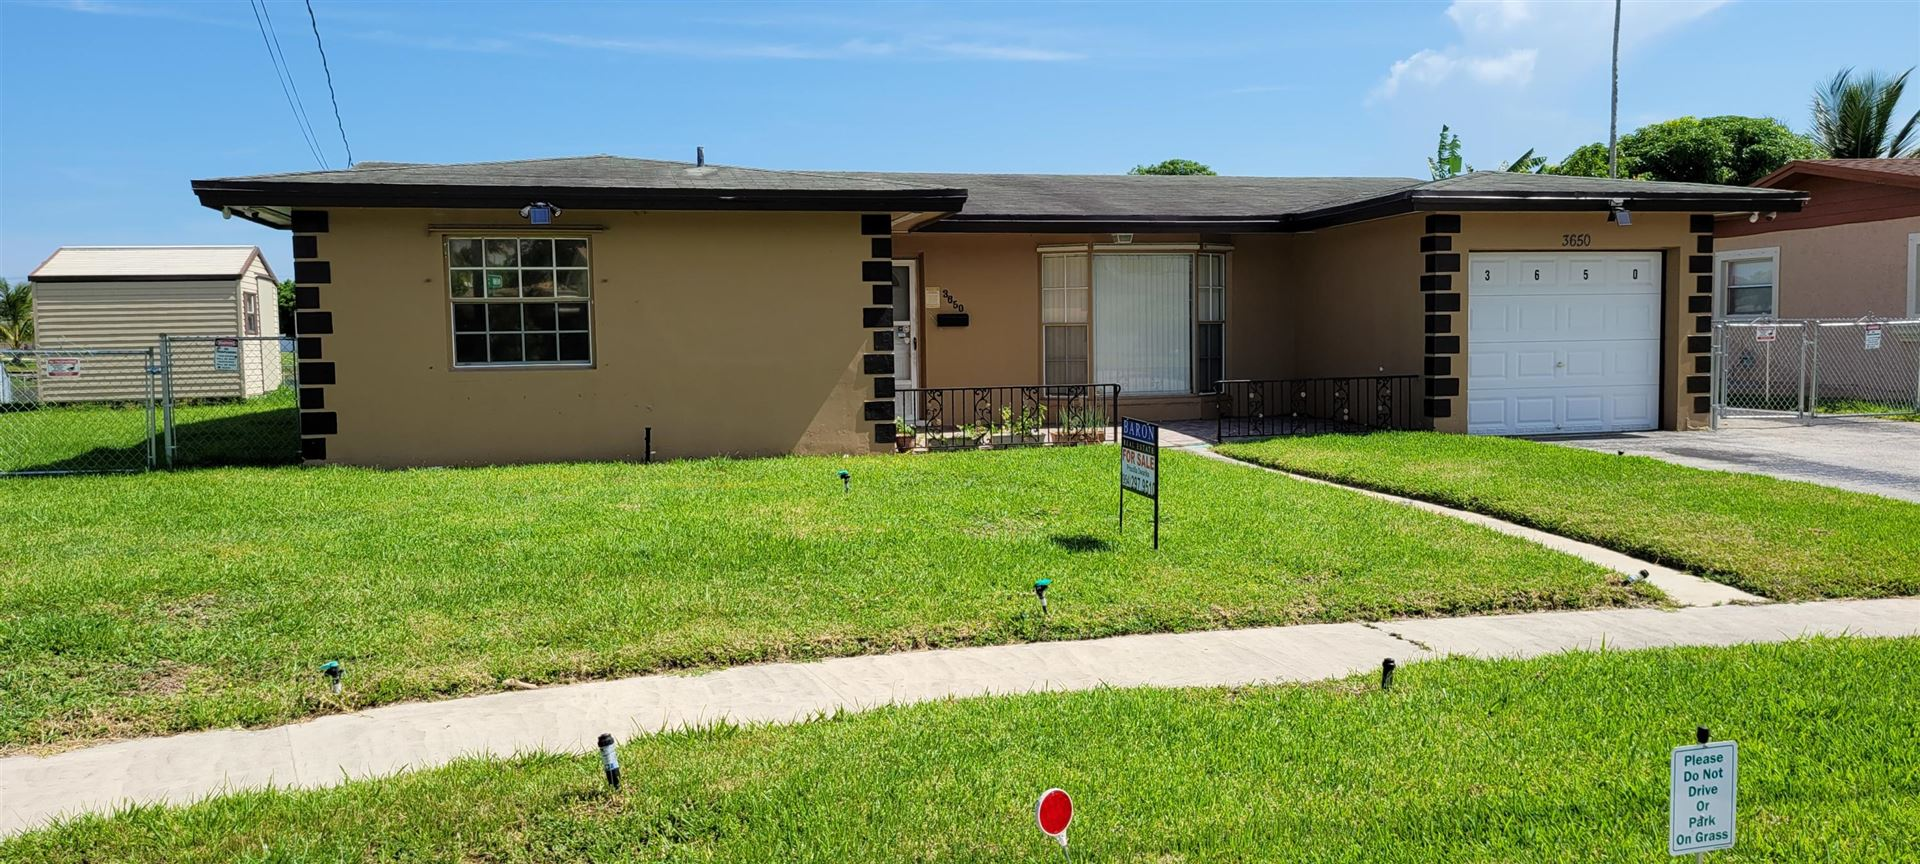 Photo of 3650 NW 27th Street NW, Lauderdale Lakes, FL 33311 (MLS # RX-10733032)